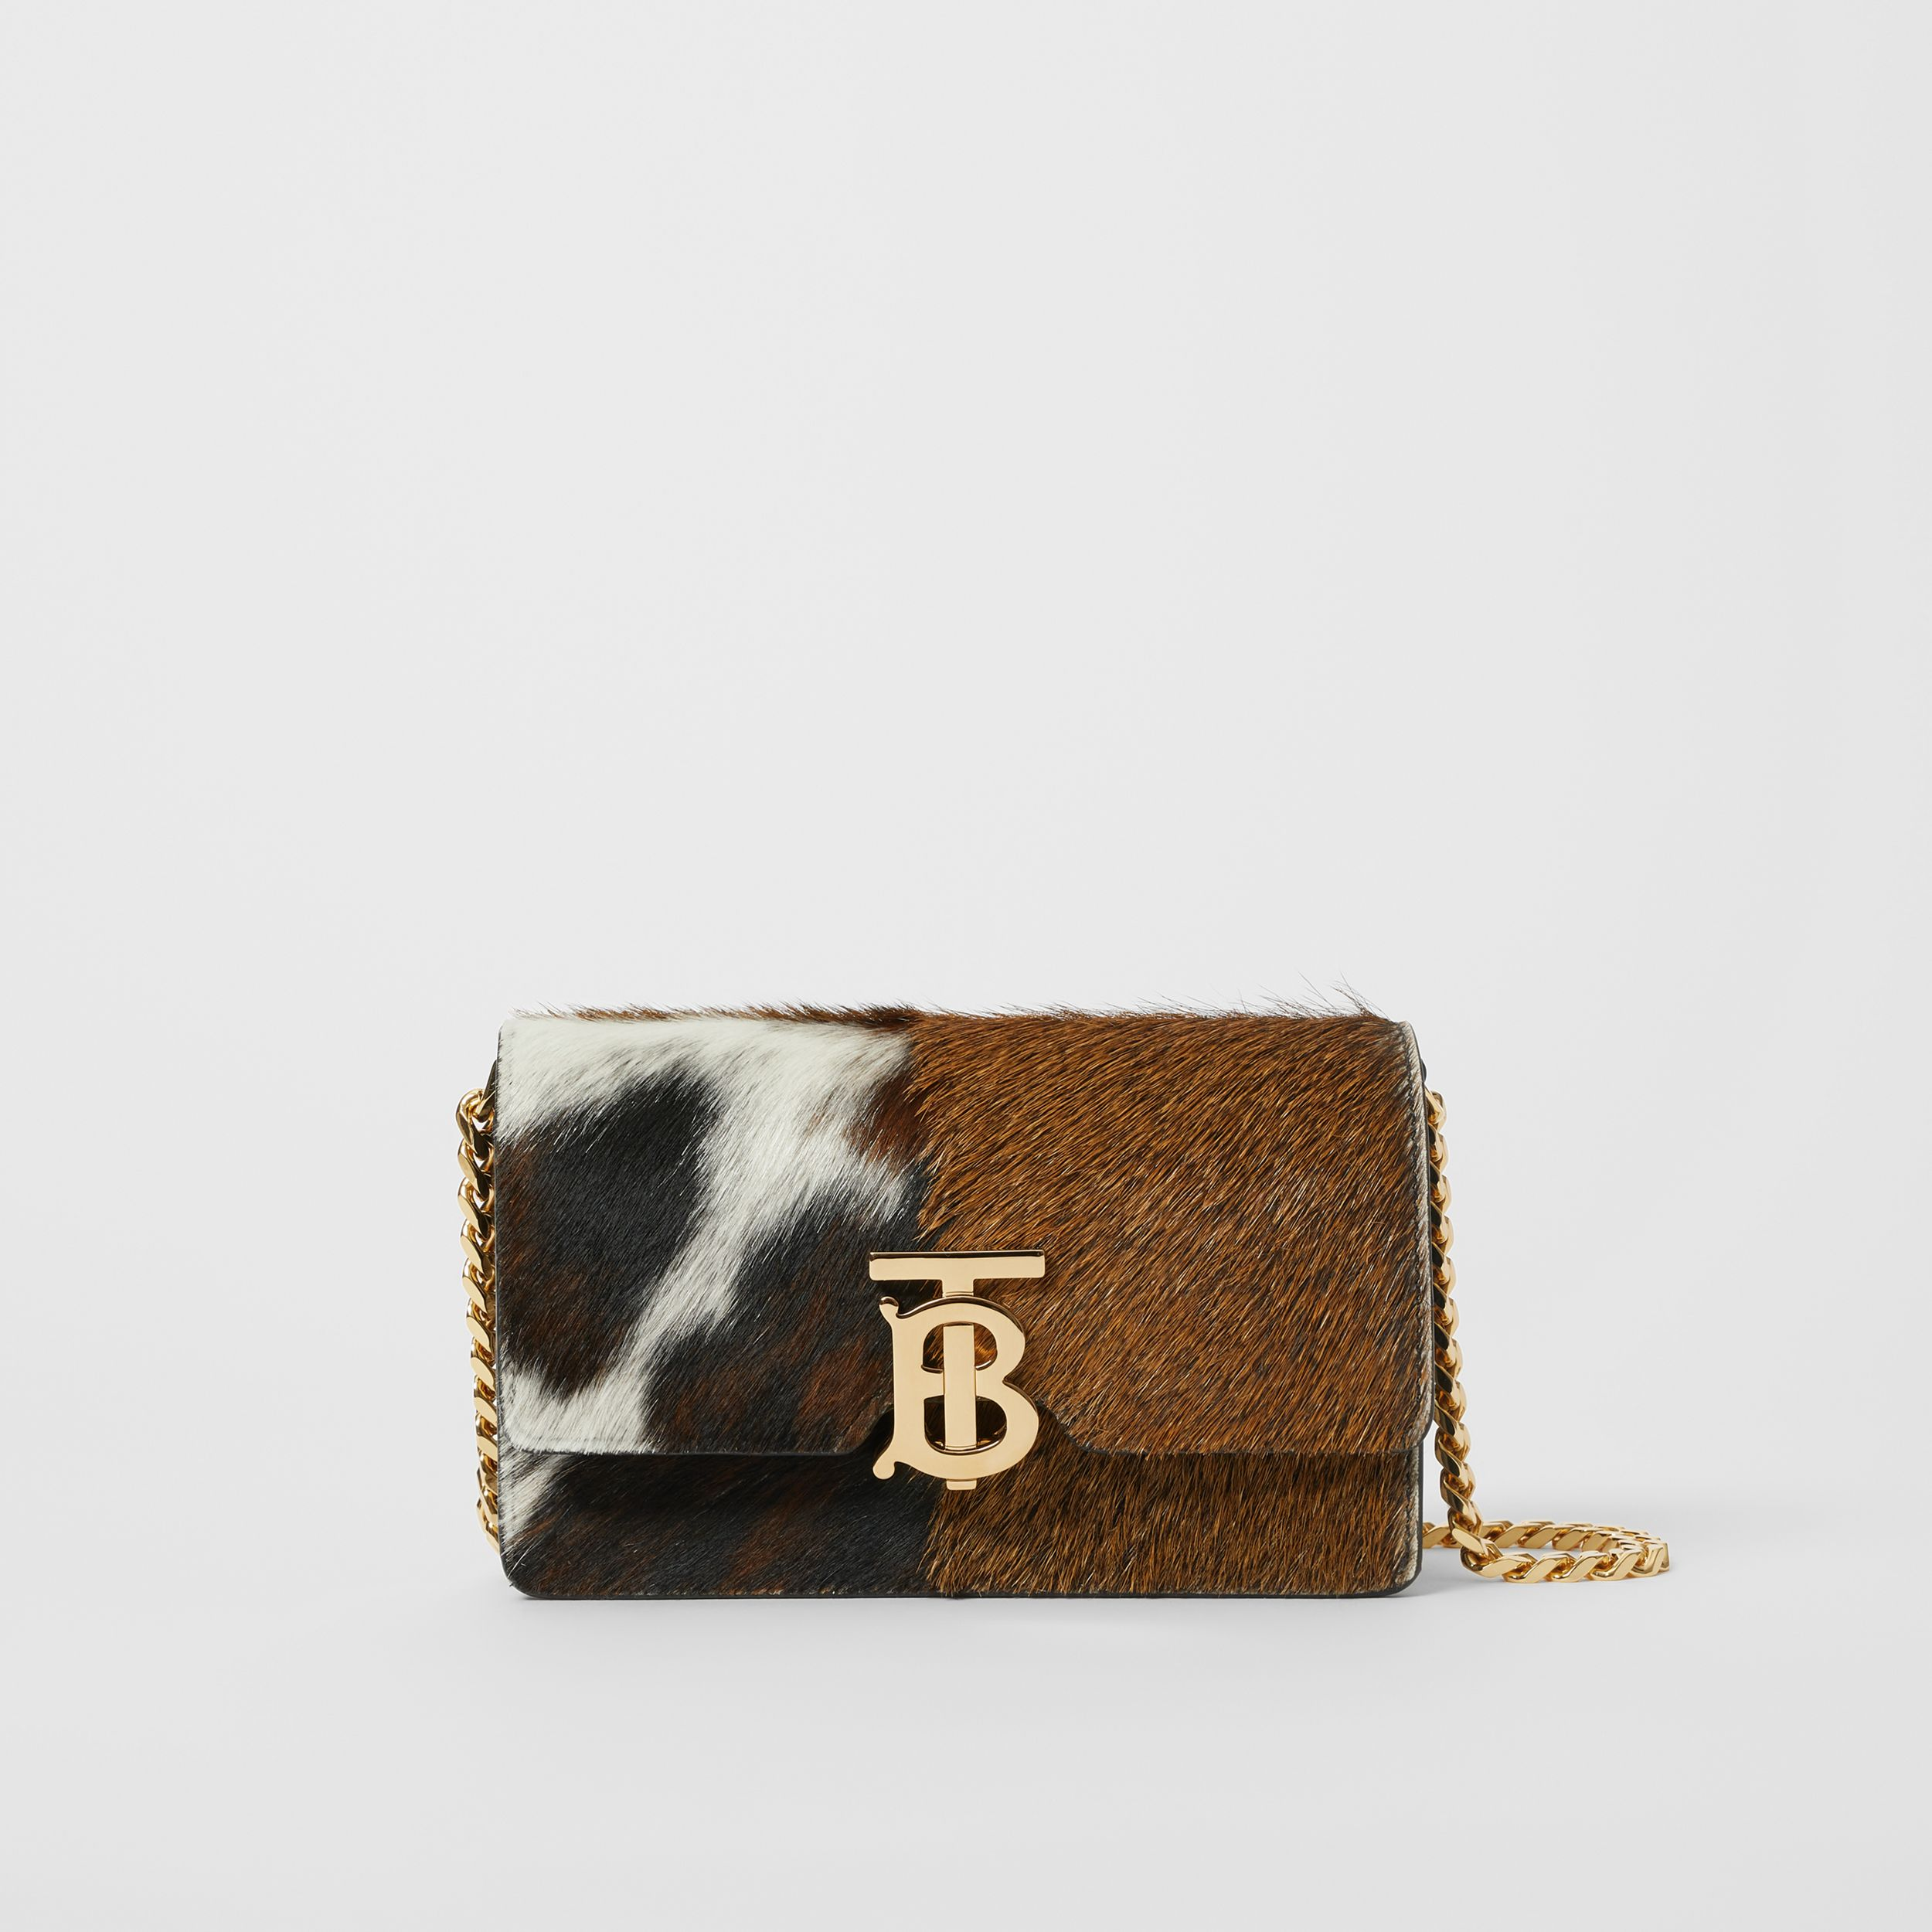 Mini Calf Hair and Leather Shoulder Bag in Black - Women | Burberry - 1